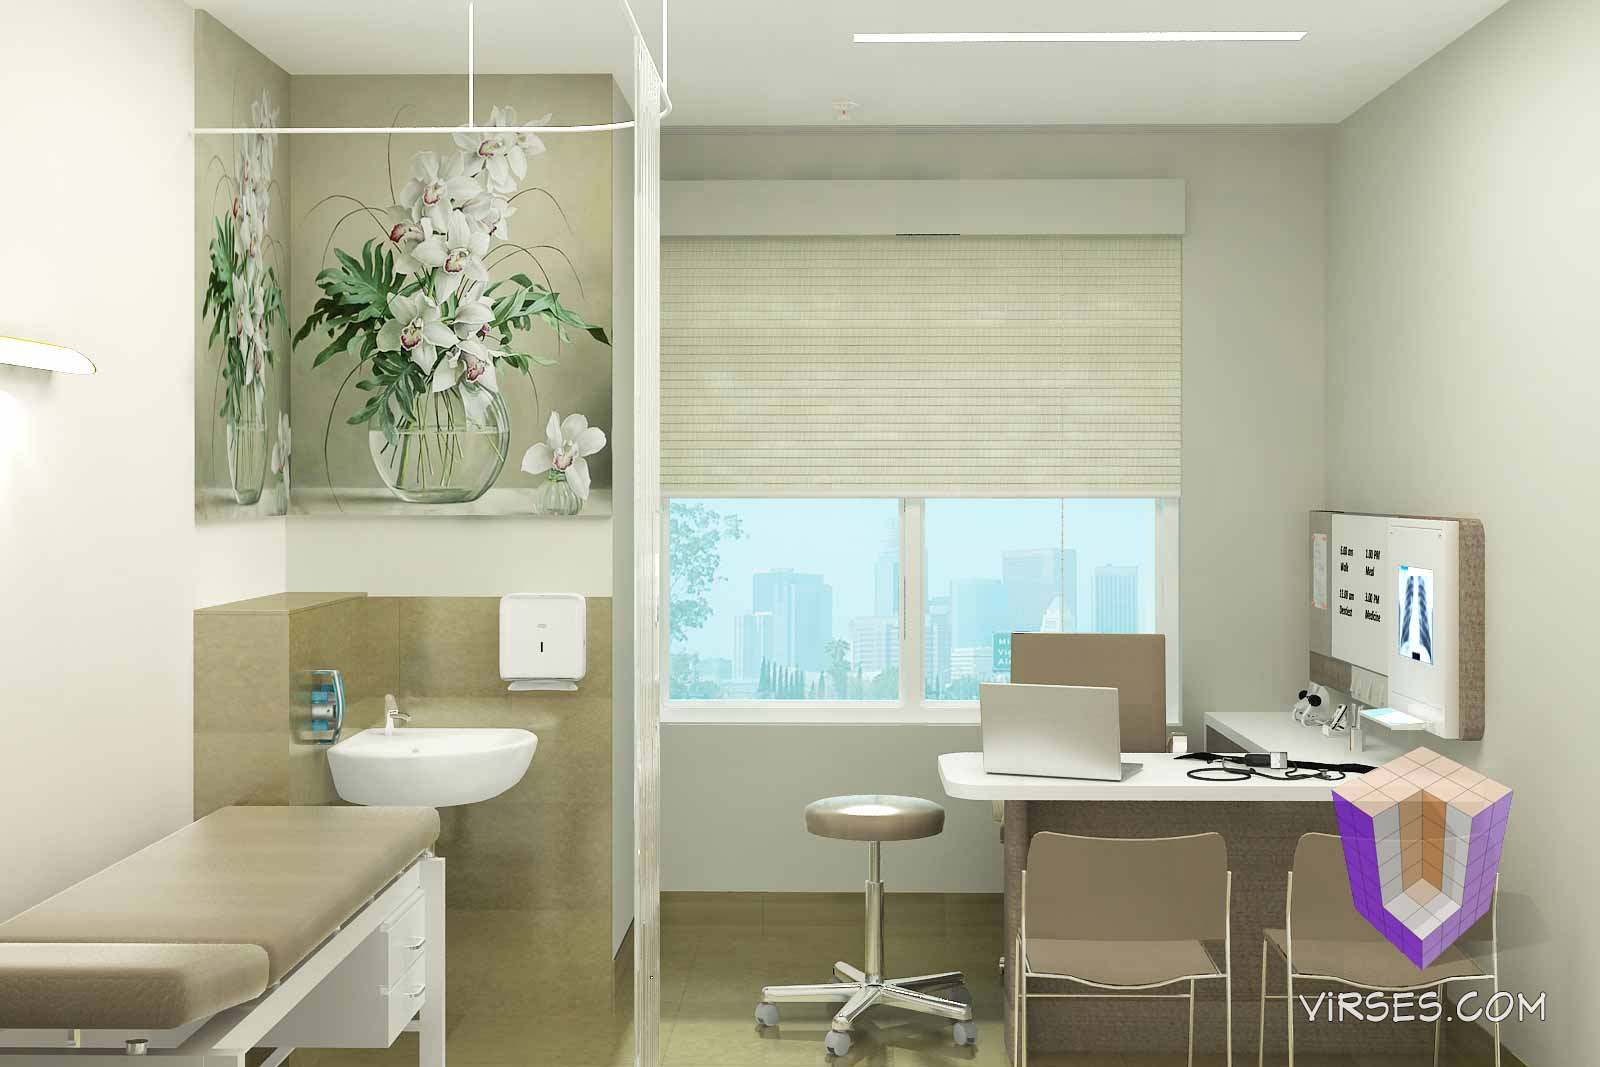 Consultant Room Architectural Rendering